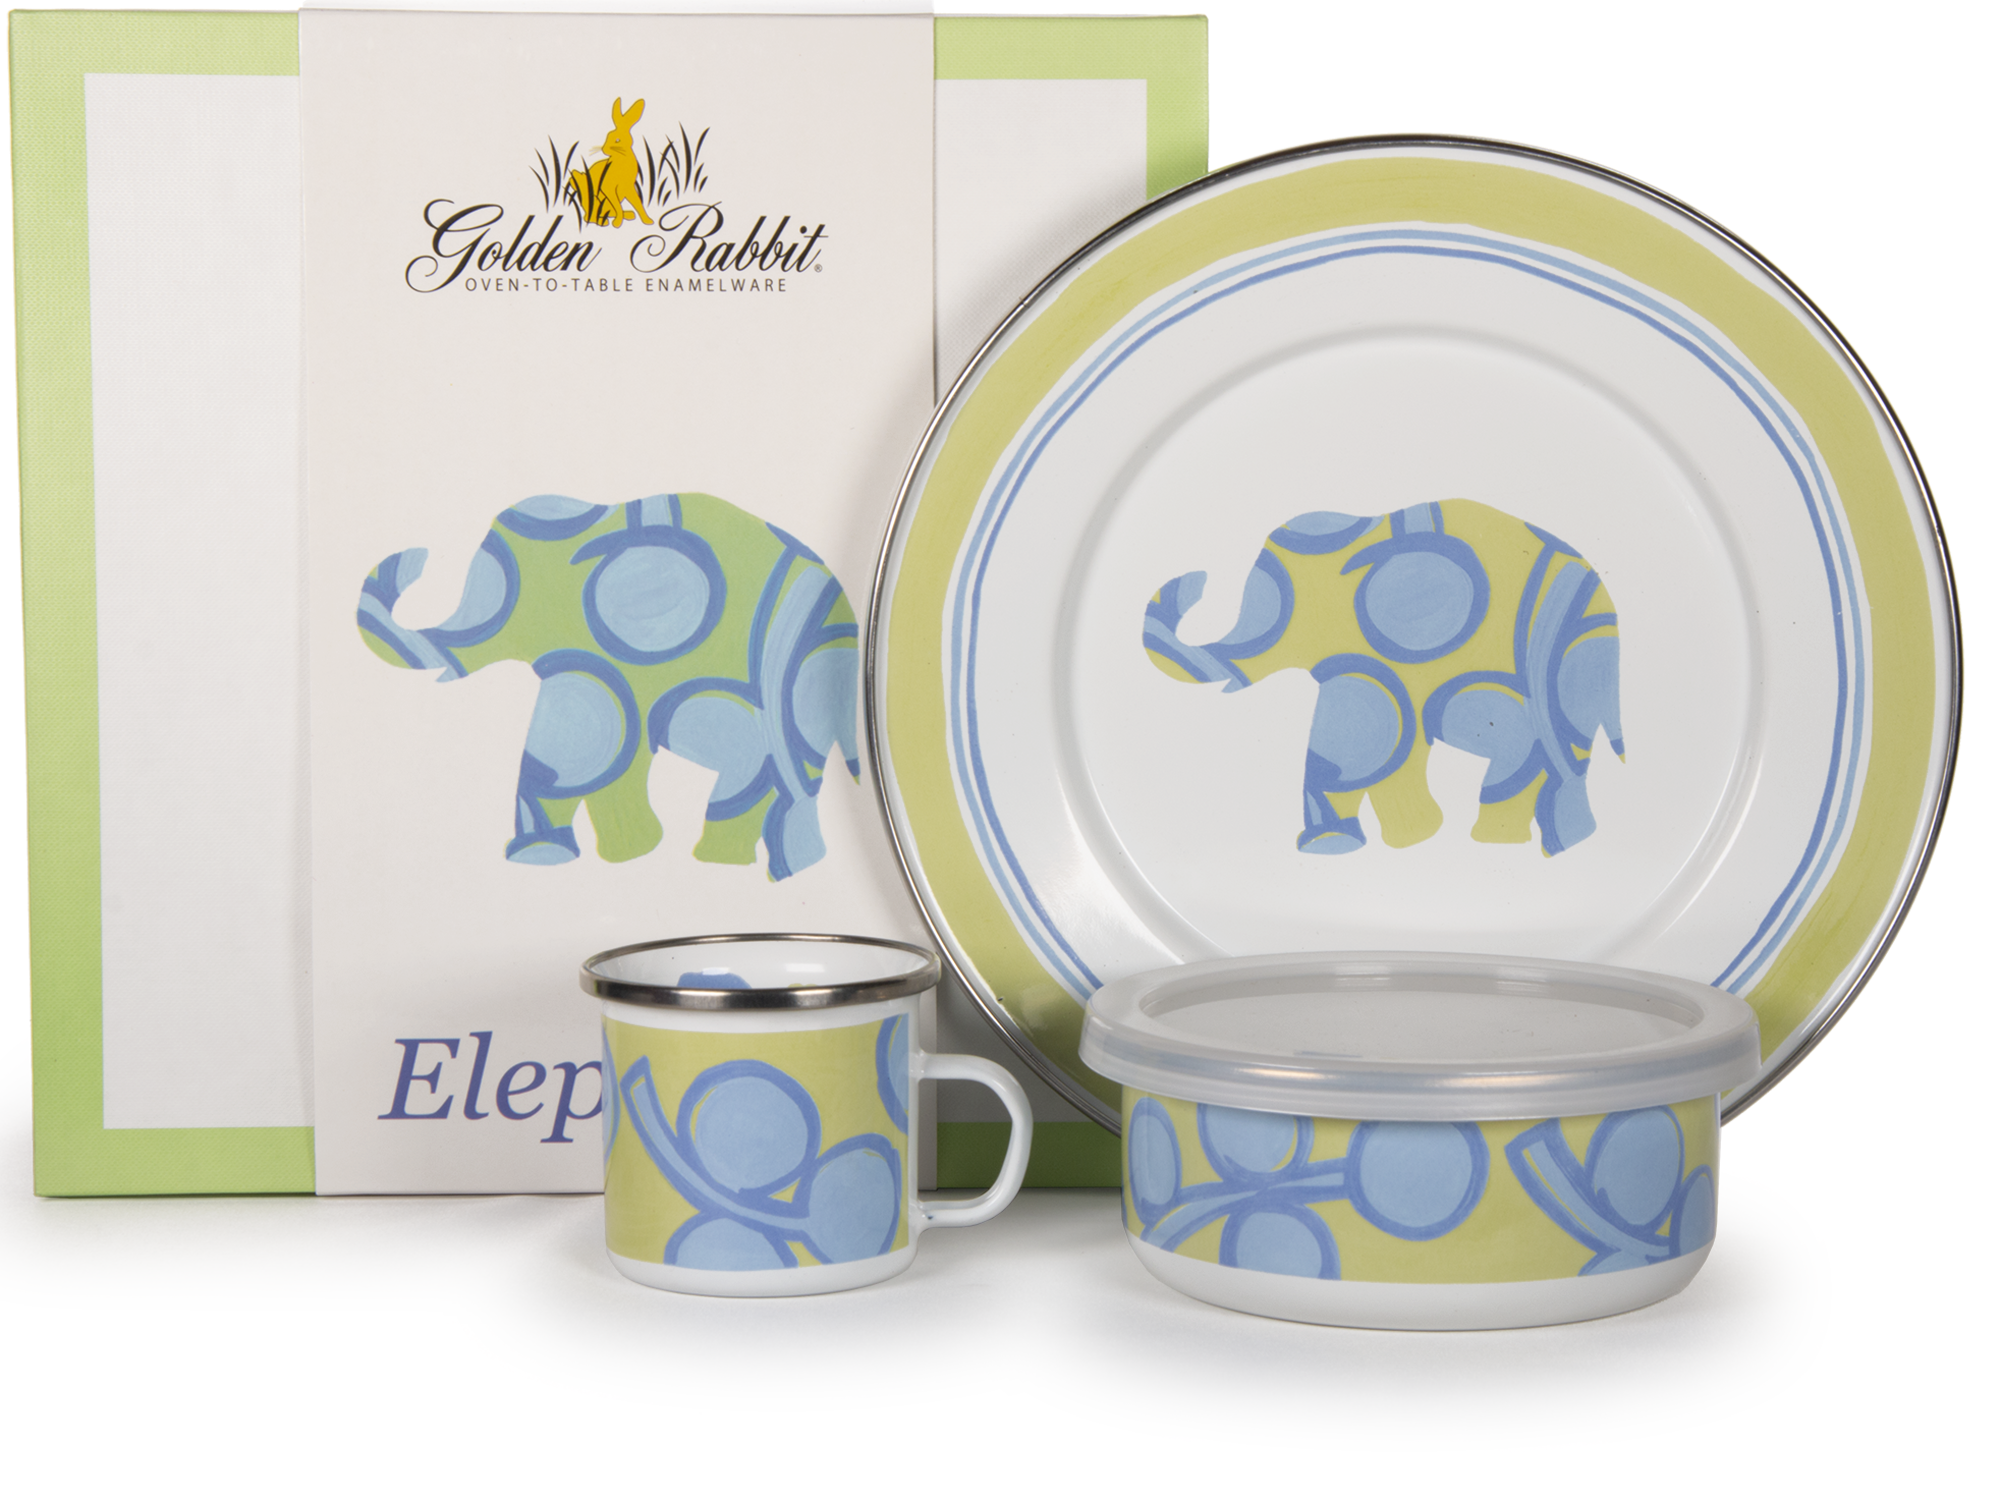 Golden Rabbit - Enamelware Elephant Pattern Child Dinner Set